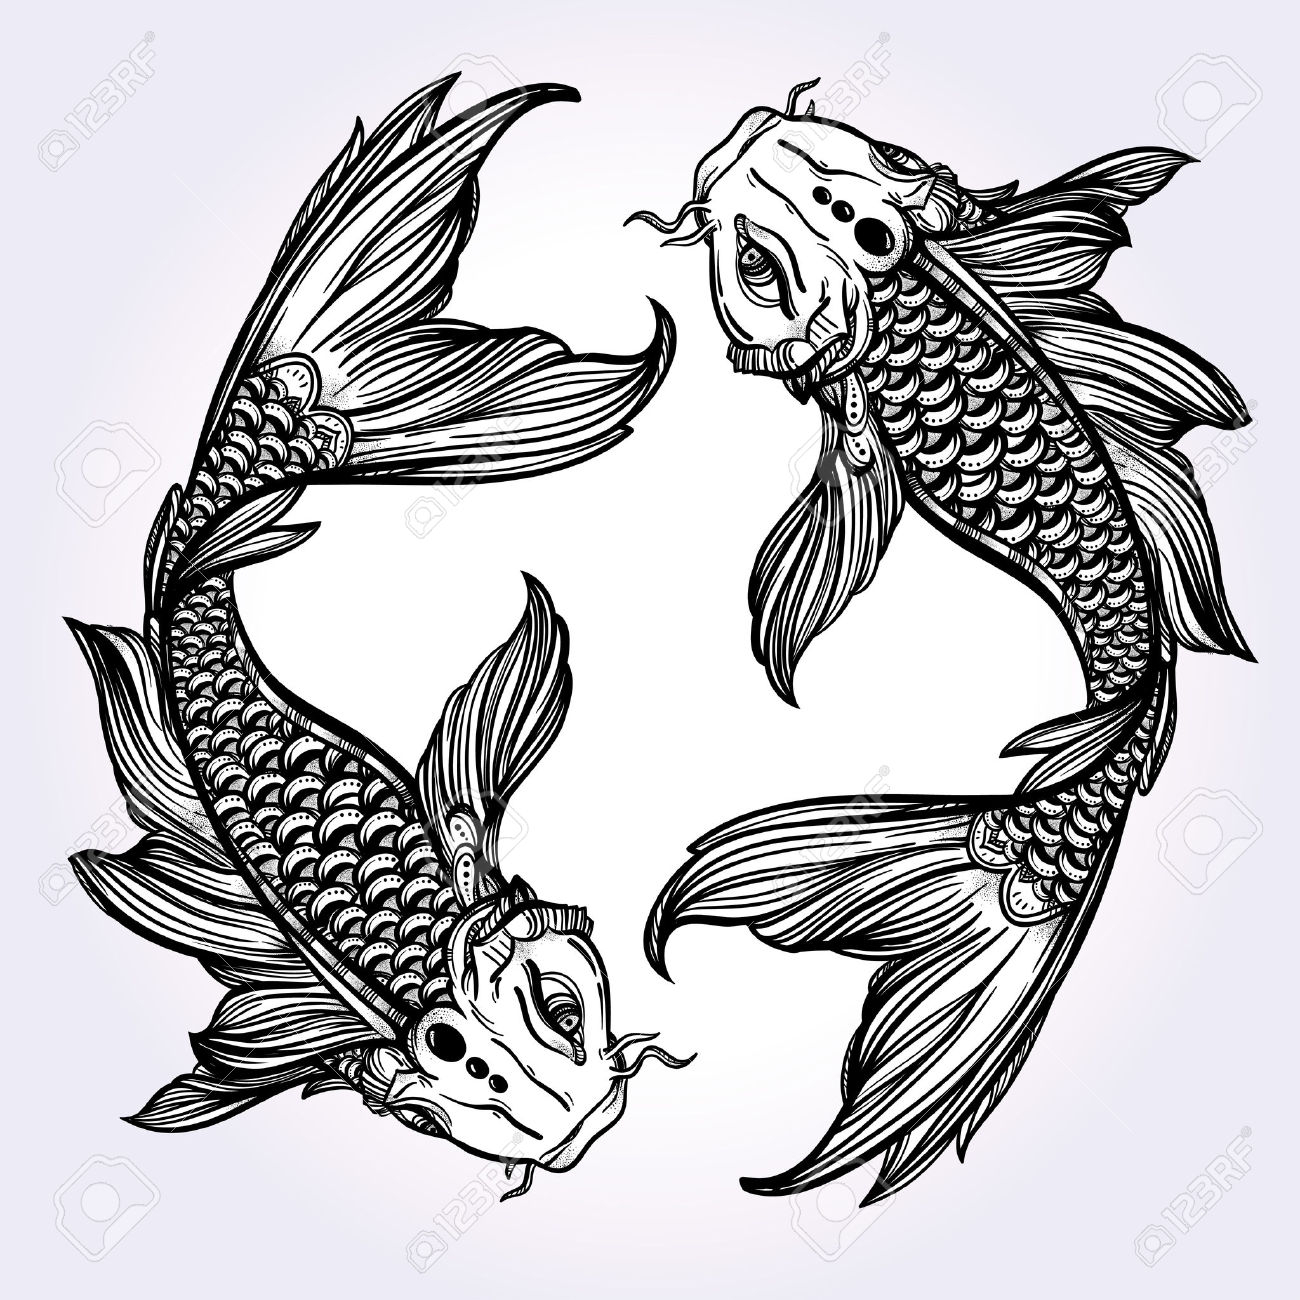 Black and white fish drawing at free for for Coy fish drawing